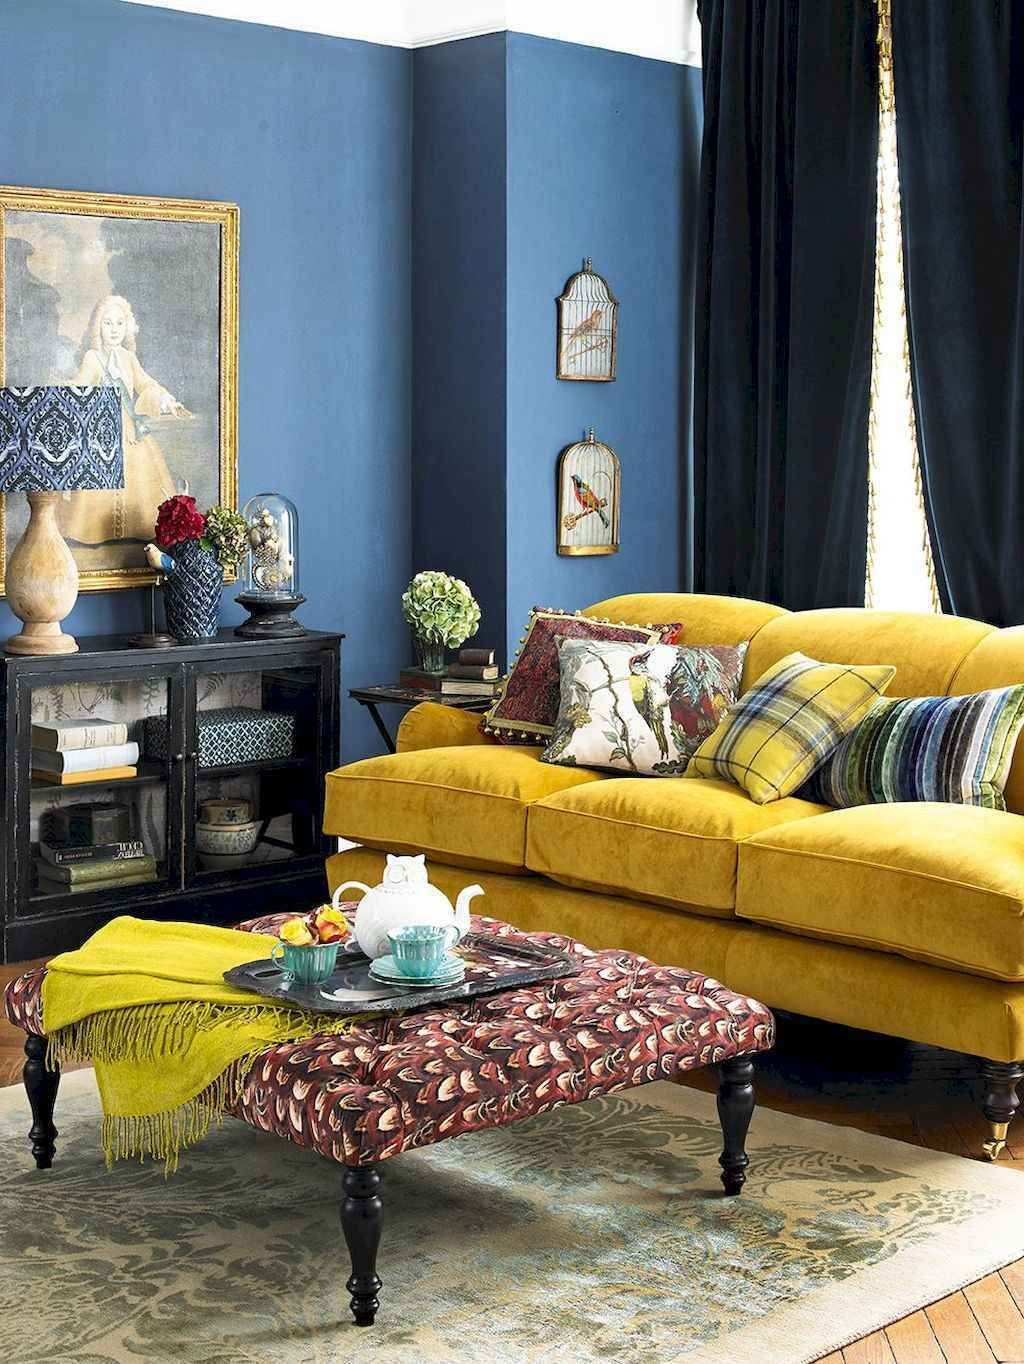 50 Inspiring Yellow Sofas For Living Room Decor Ideas Blue Living Room Yellow Living Room Yellow Walls Living Room